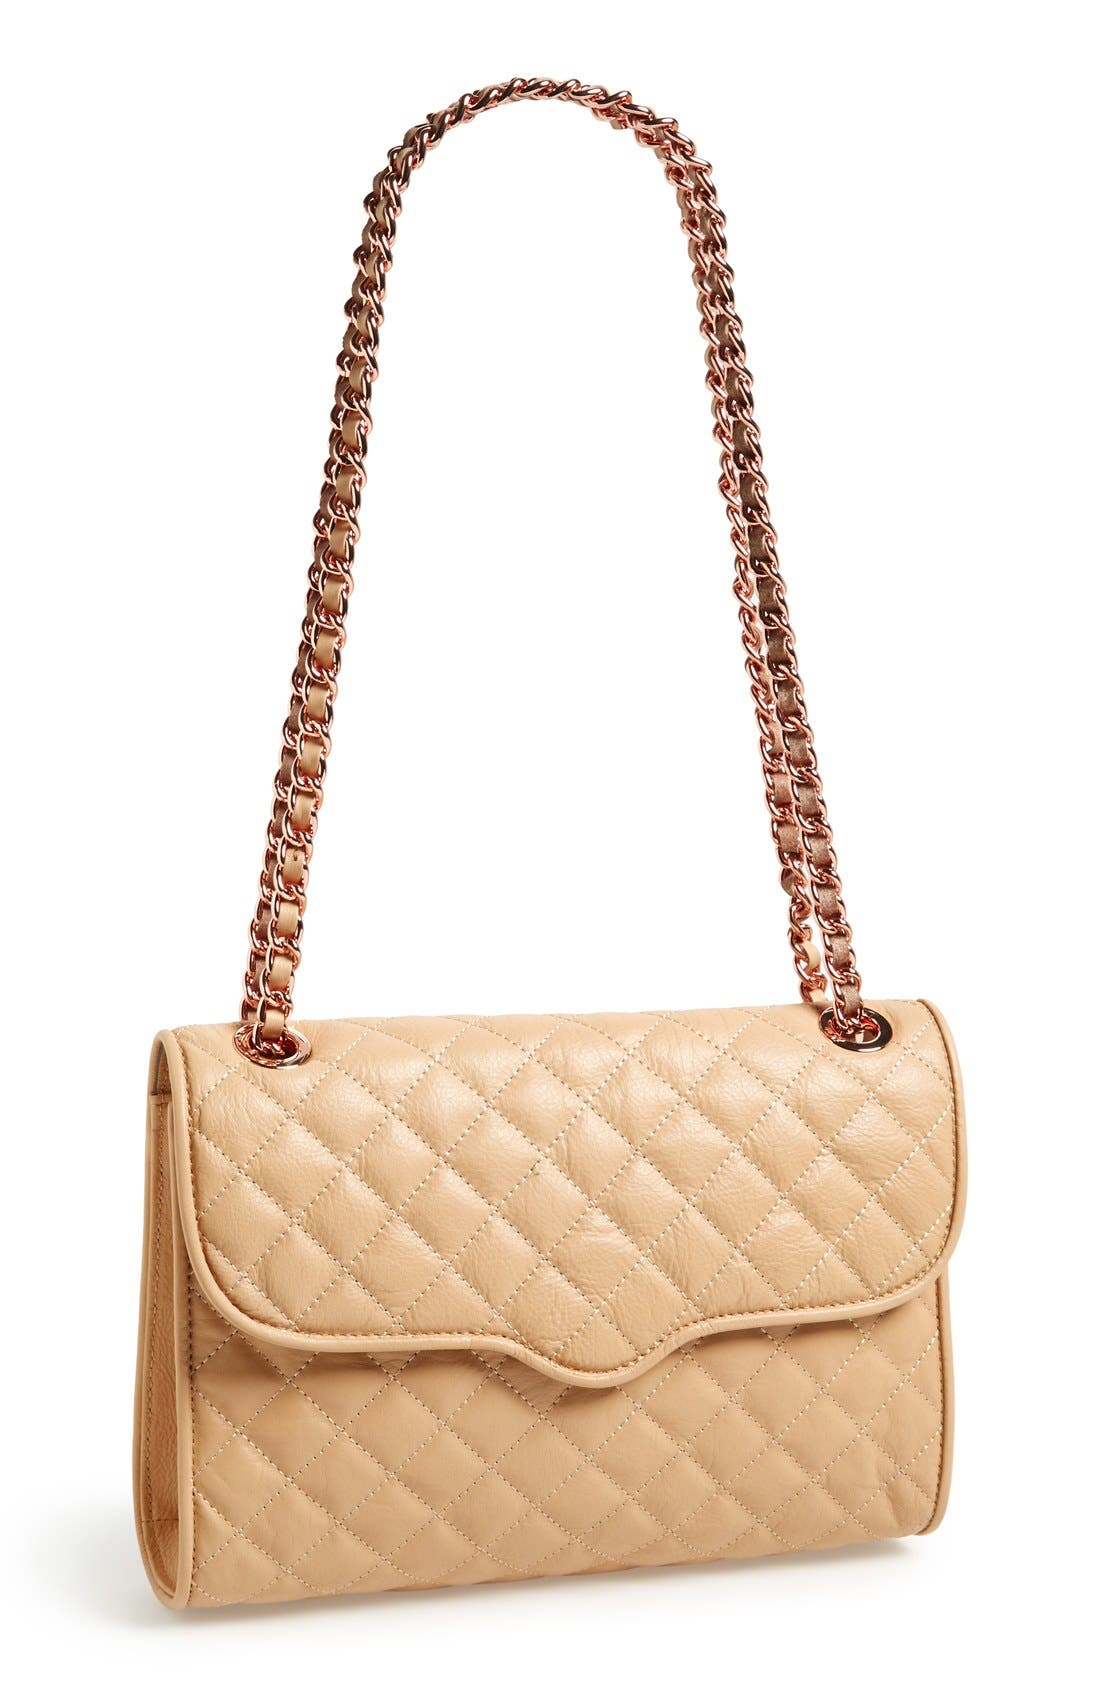 Alternate Image 1 Selected - Rebecca Minkoff 'Quilted Affair' Convertible Shoulder Bag